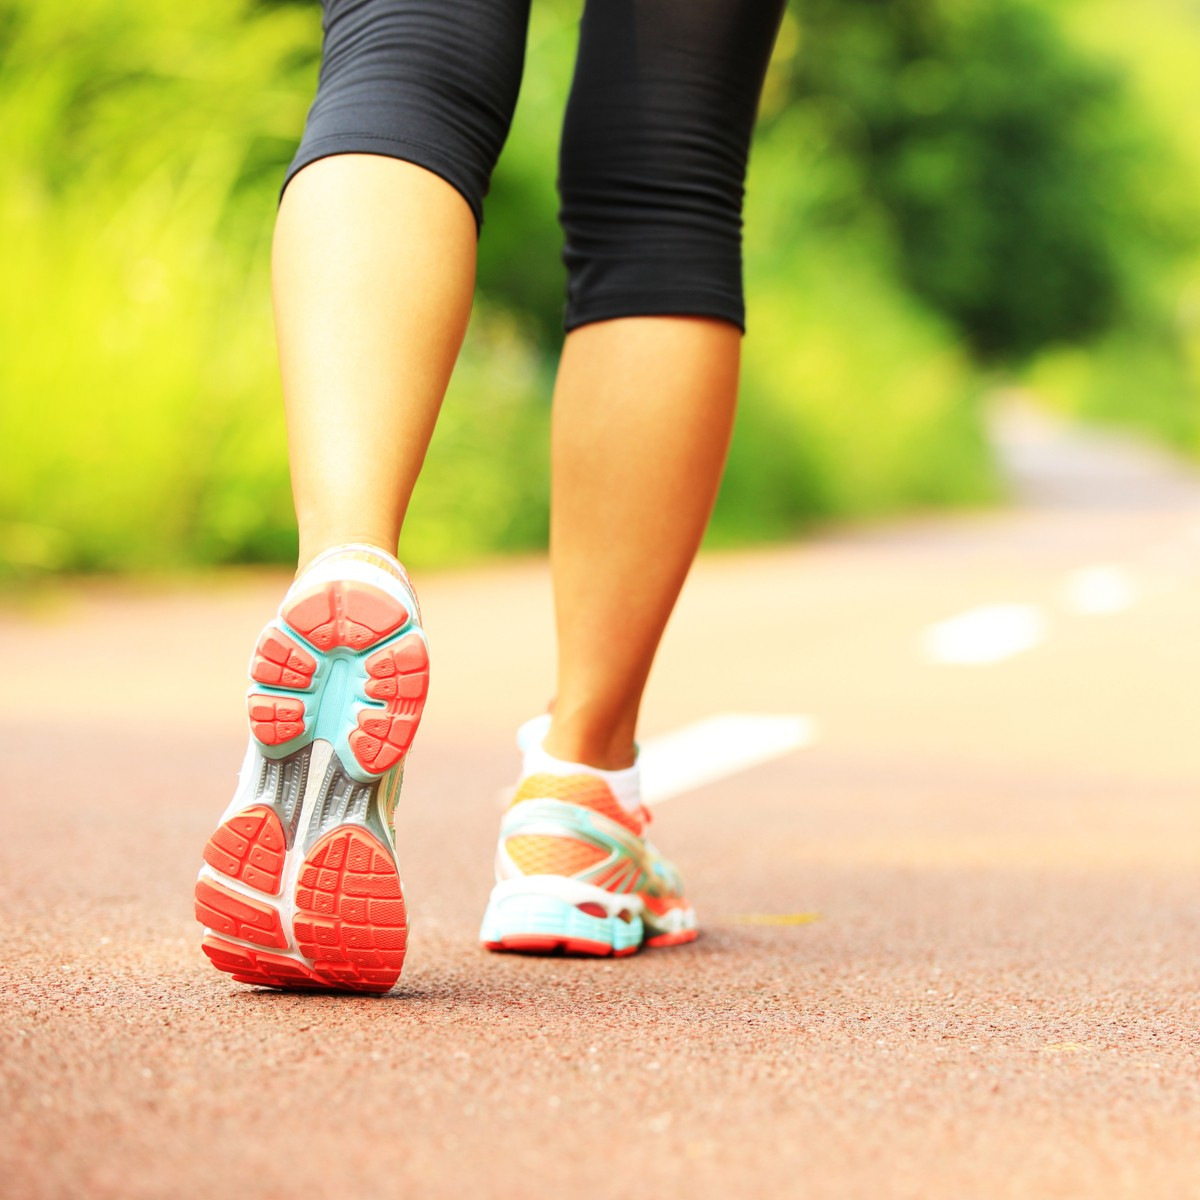 Can walking really lead to injury?